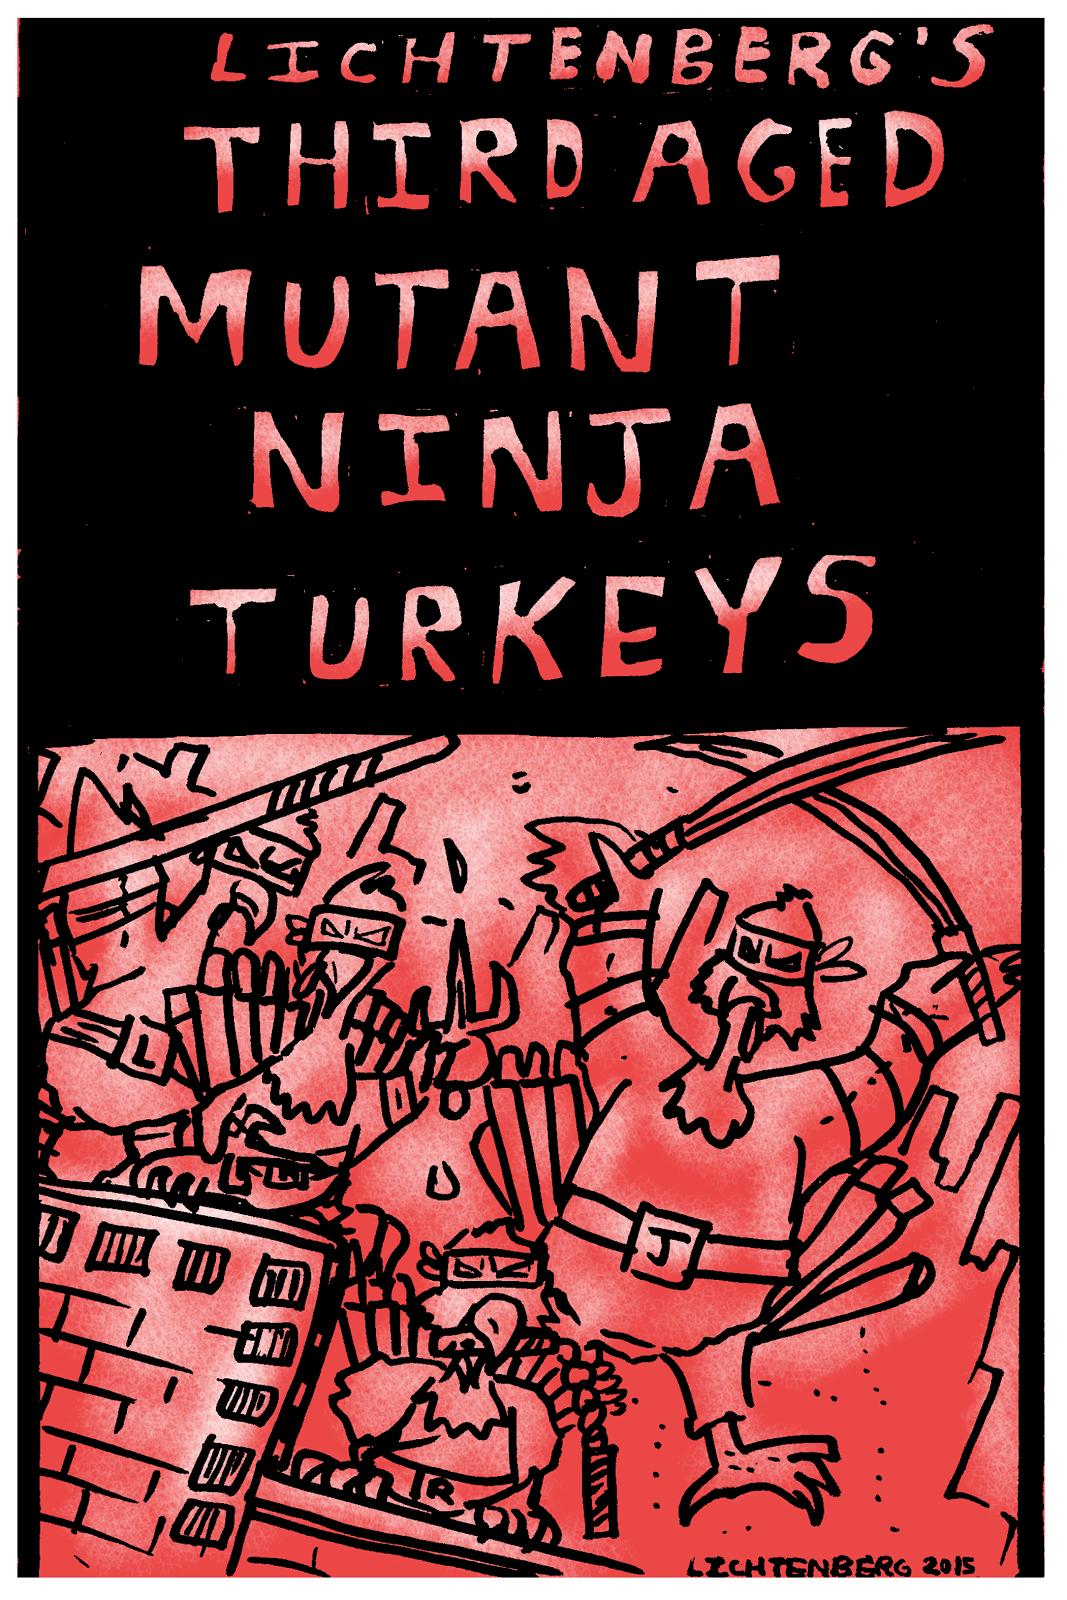 Third Aged Mutant Ninja Turkeys